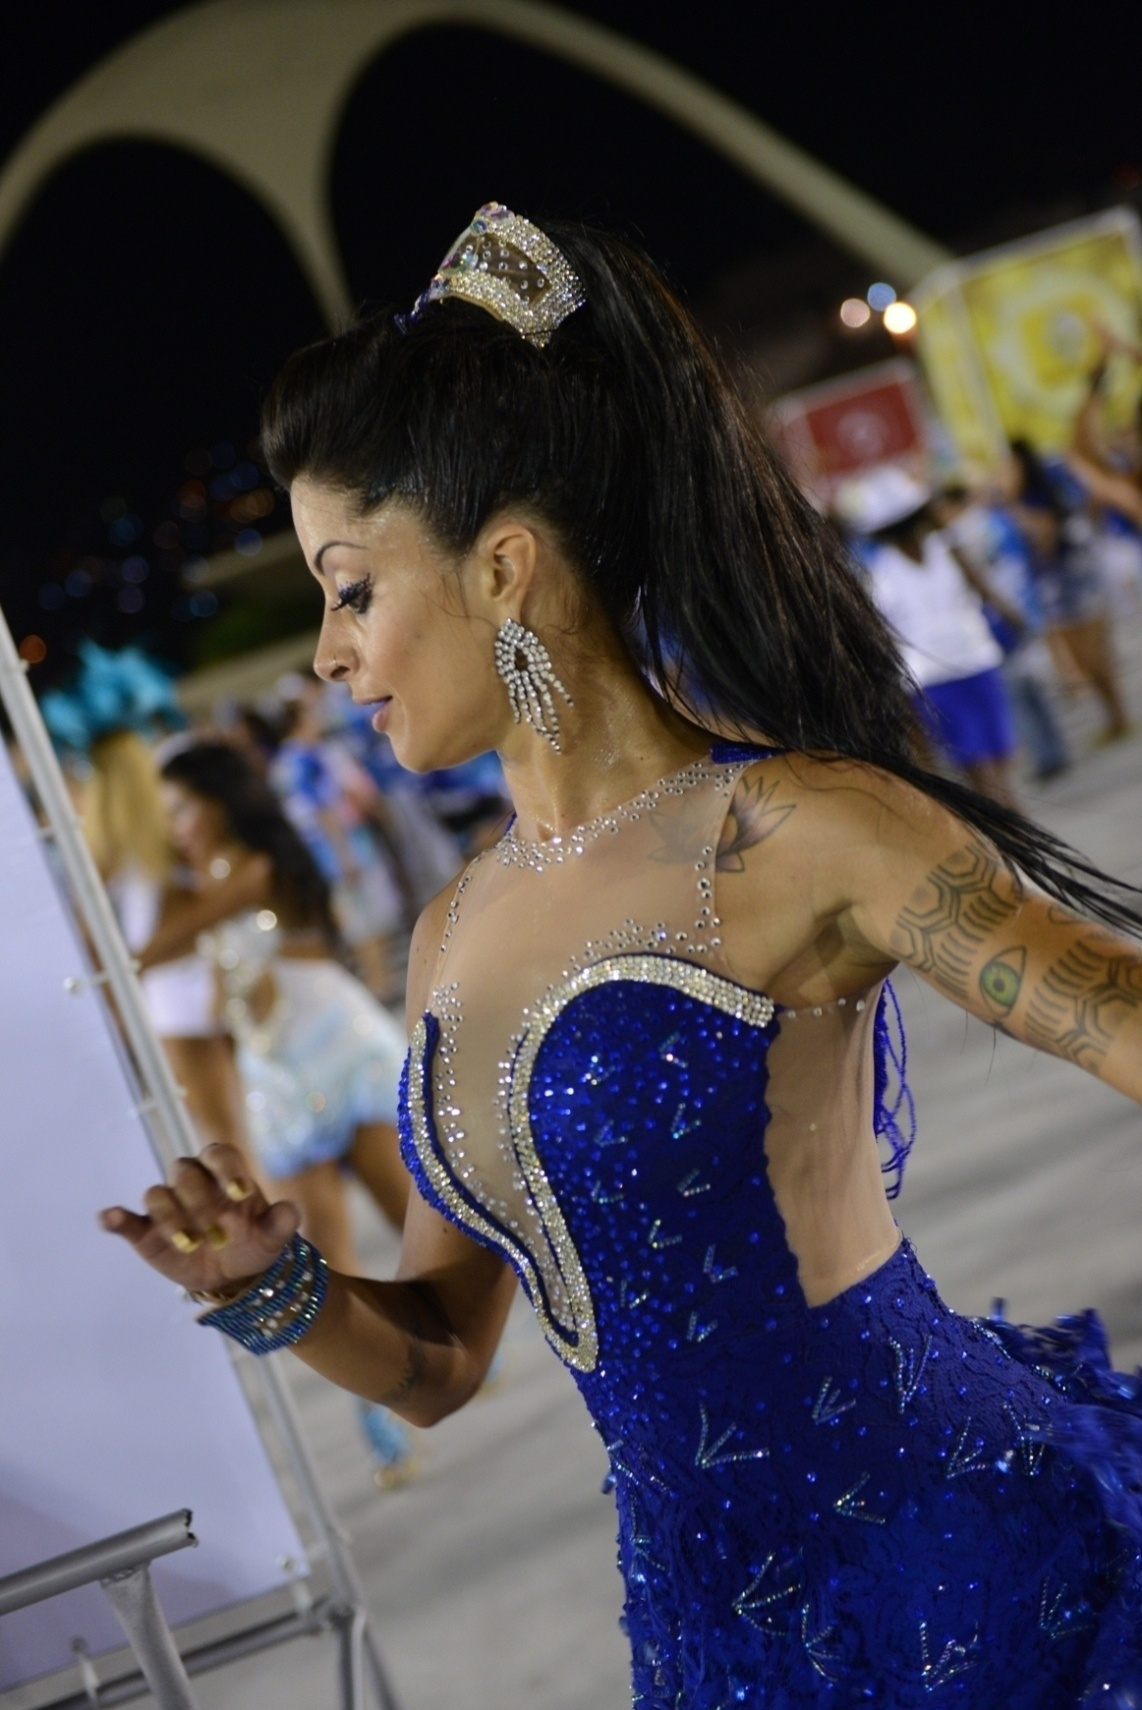 19.jan.2014 - Aline Riscado, bailarina do